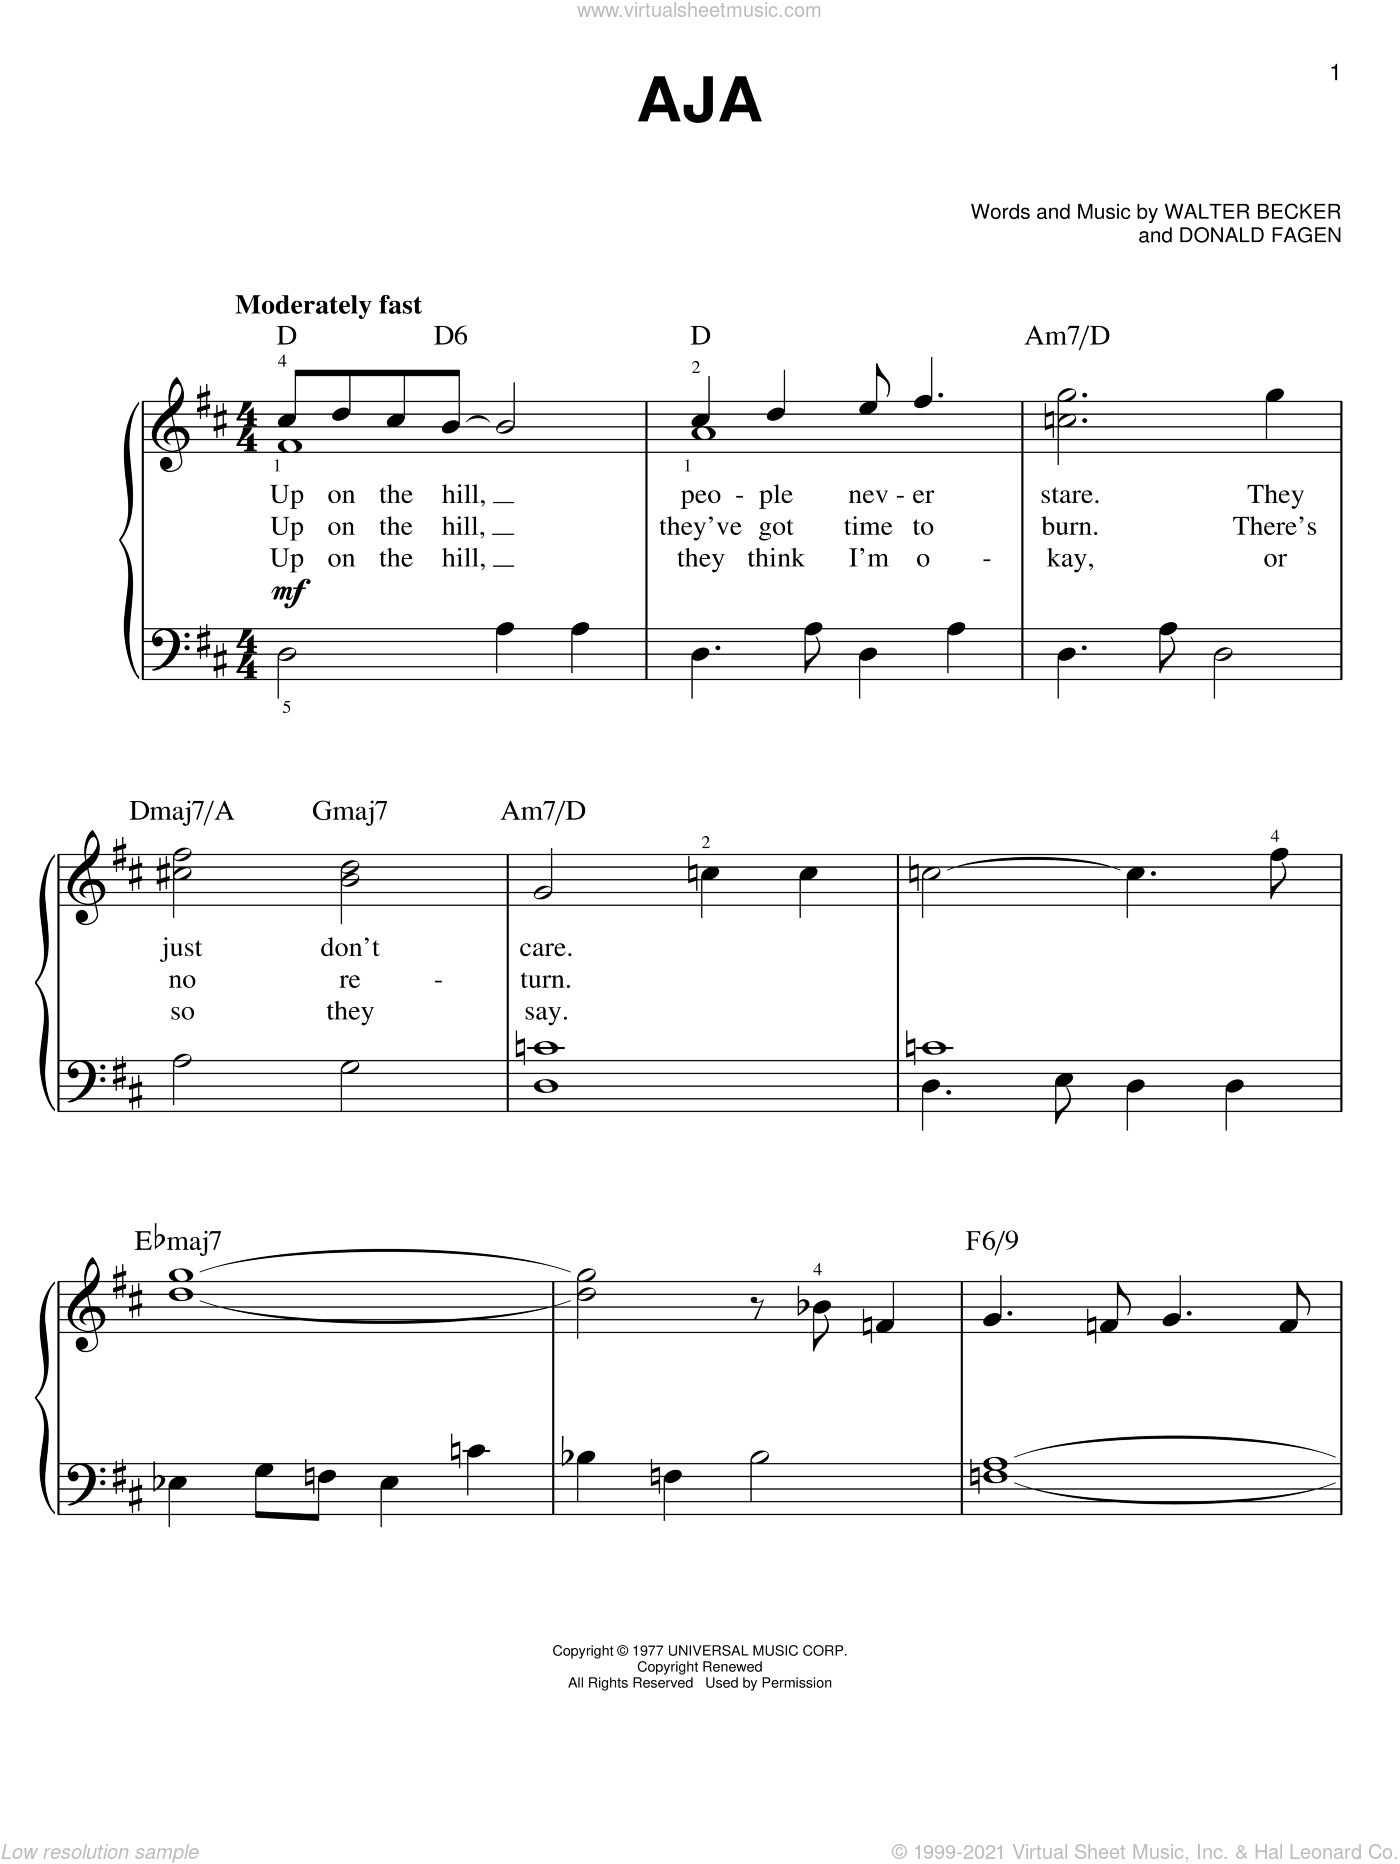 Aja sheet music for piano solo by Steely Dan, Donald Fagen and Walter Becker, easy skill level